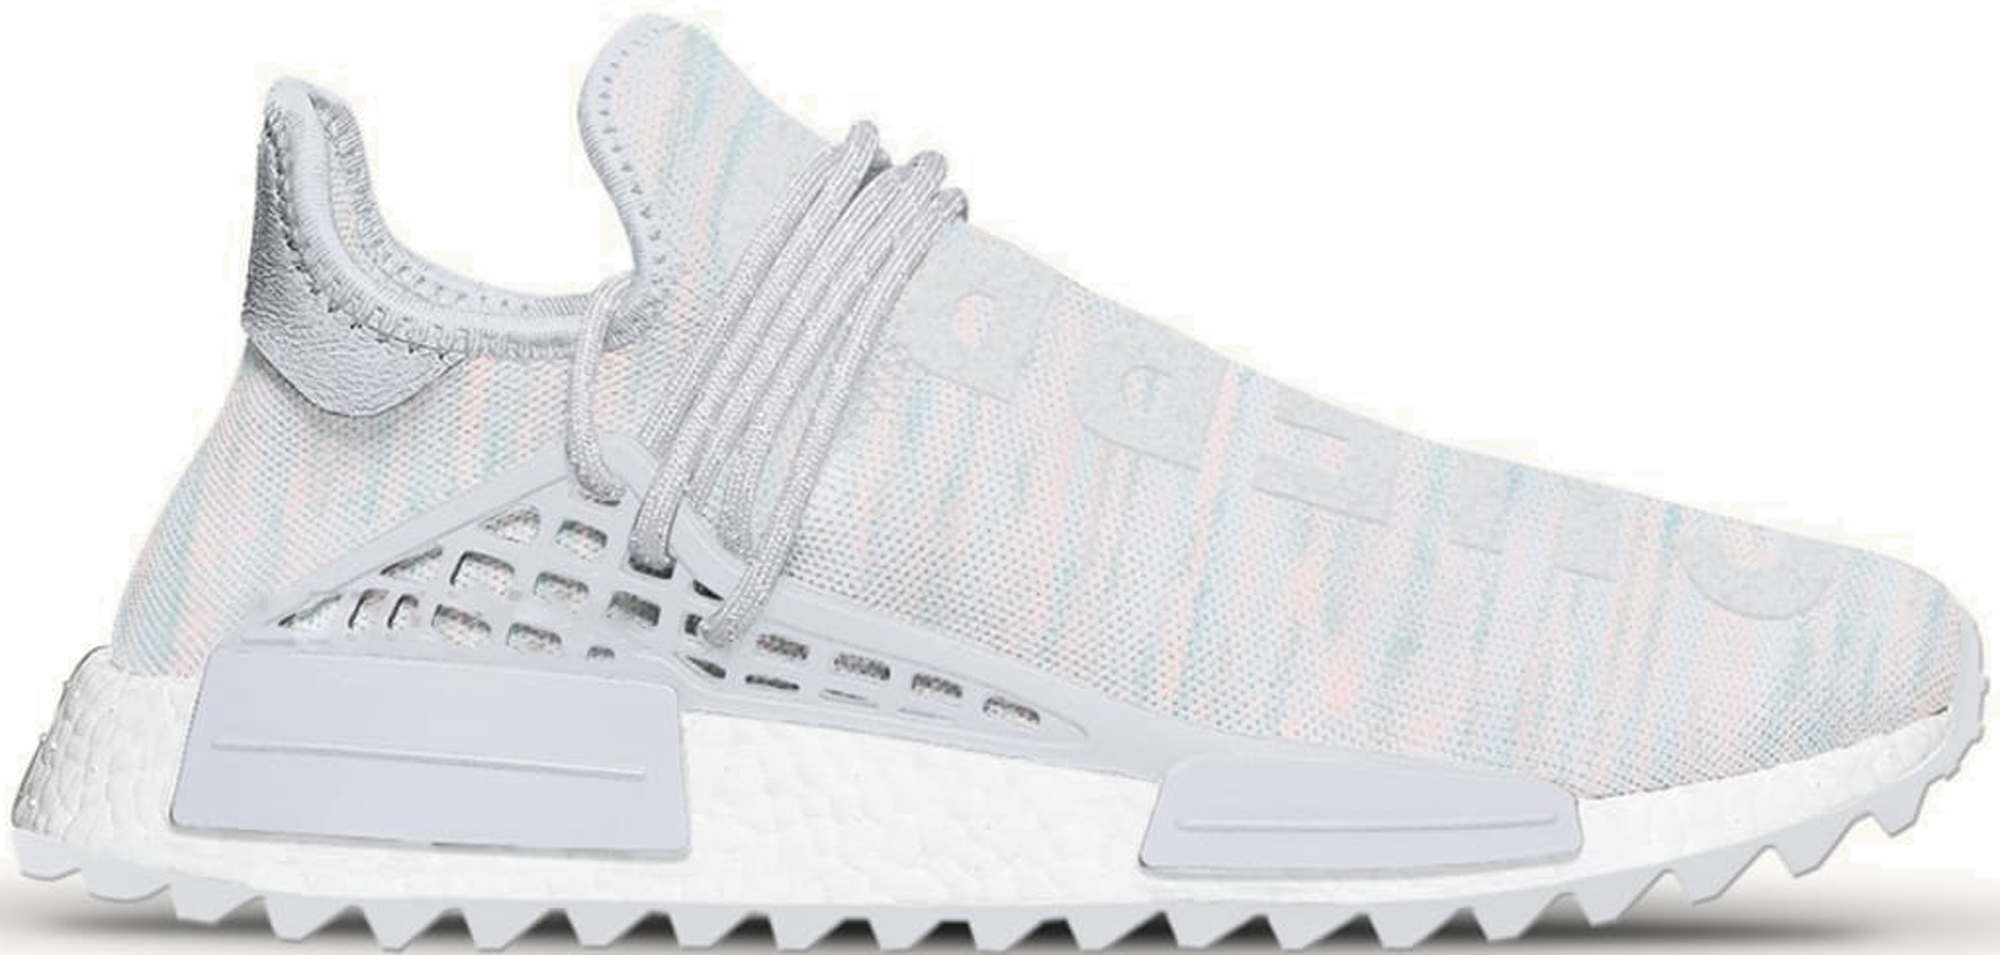 adidas Human Race NMD Pharrell x BBC Cotton Candy